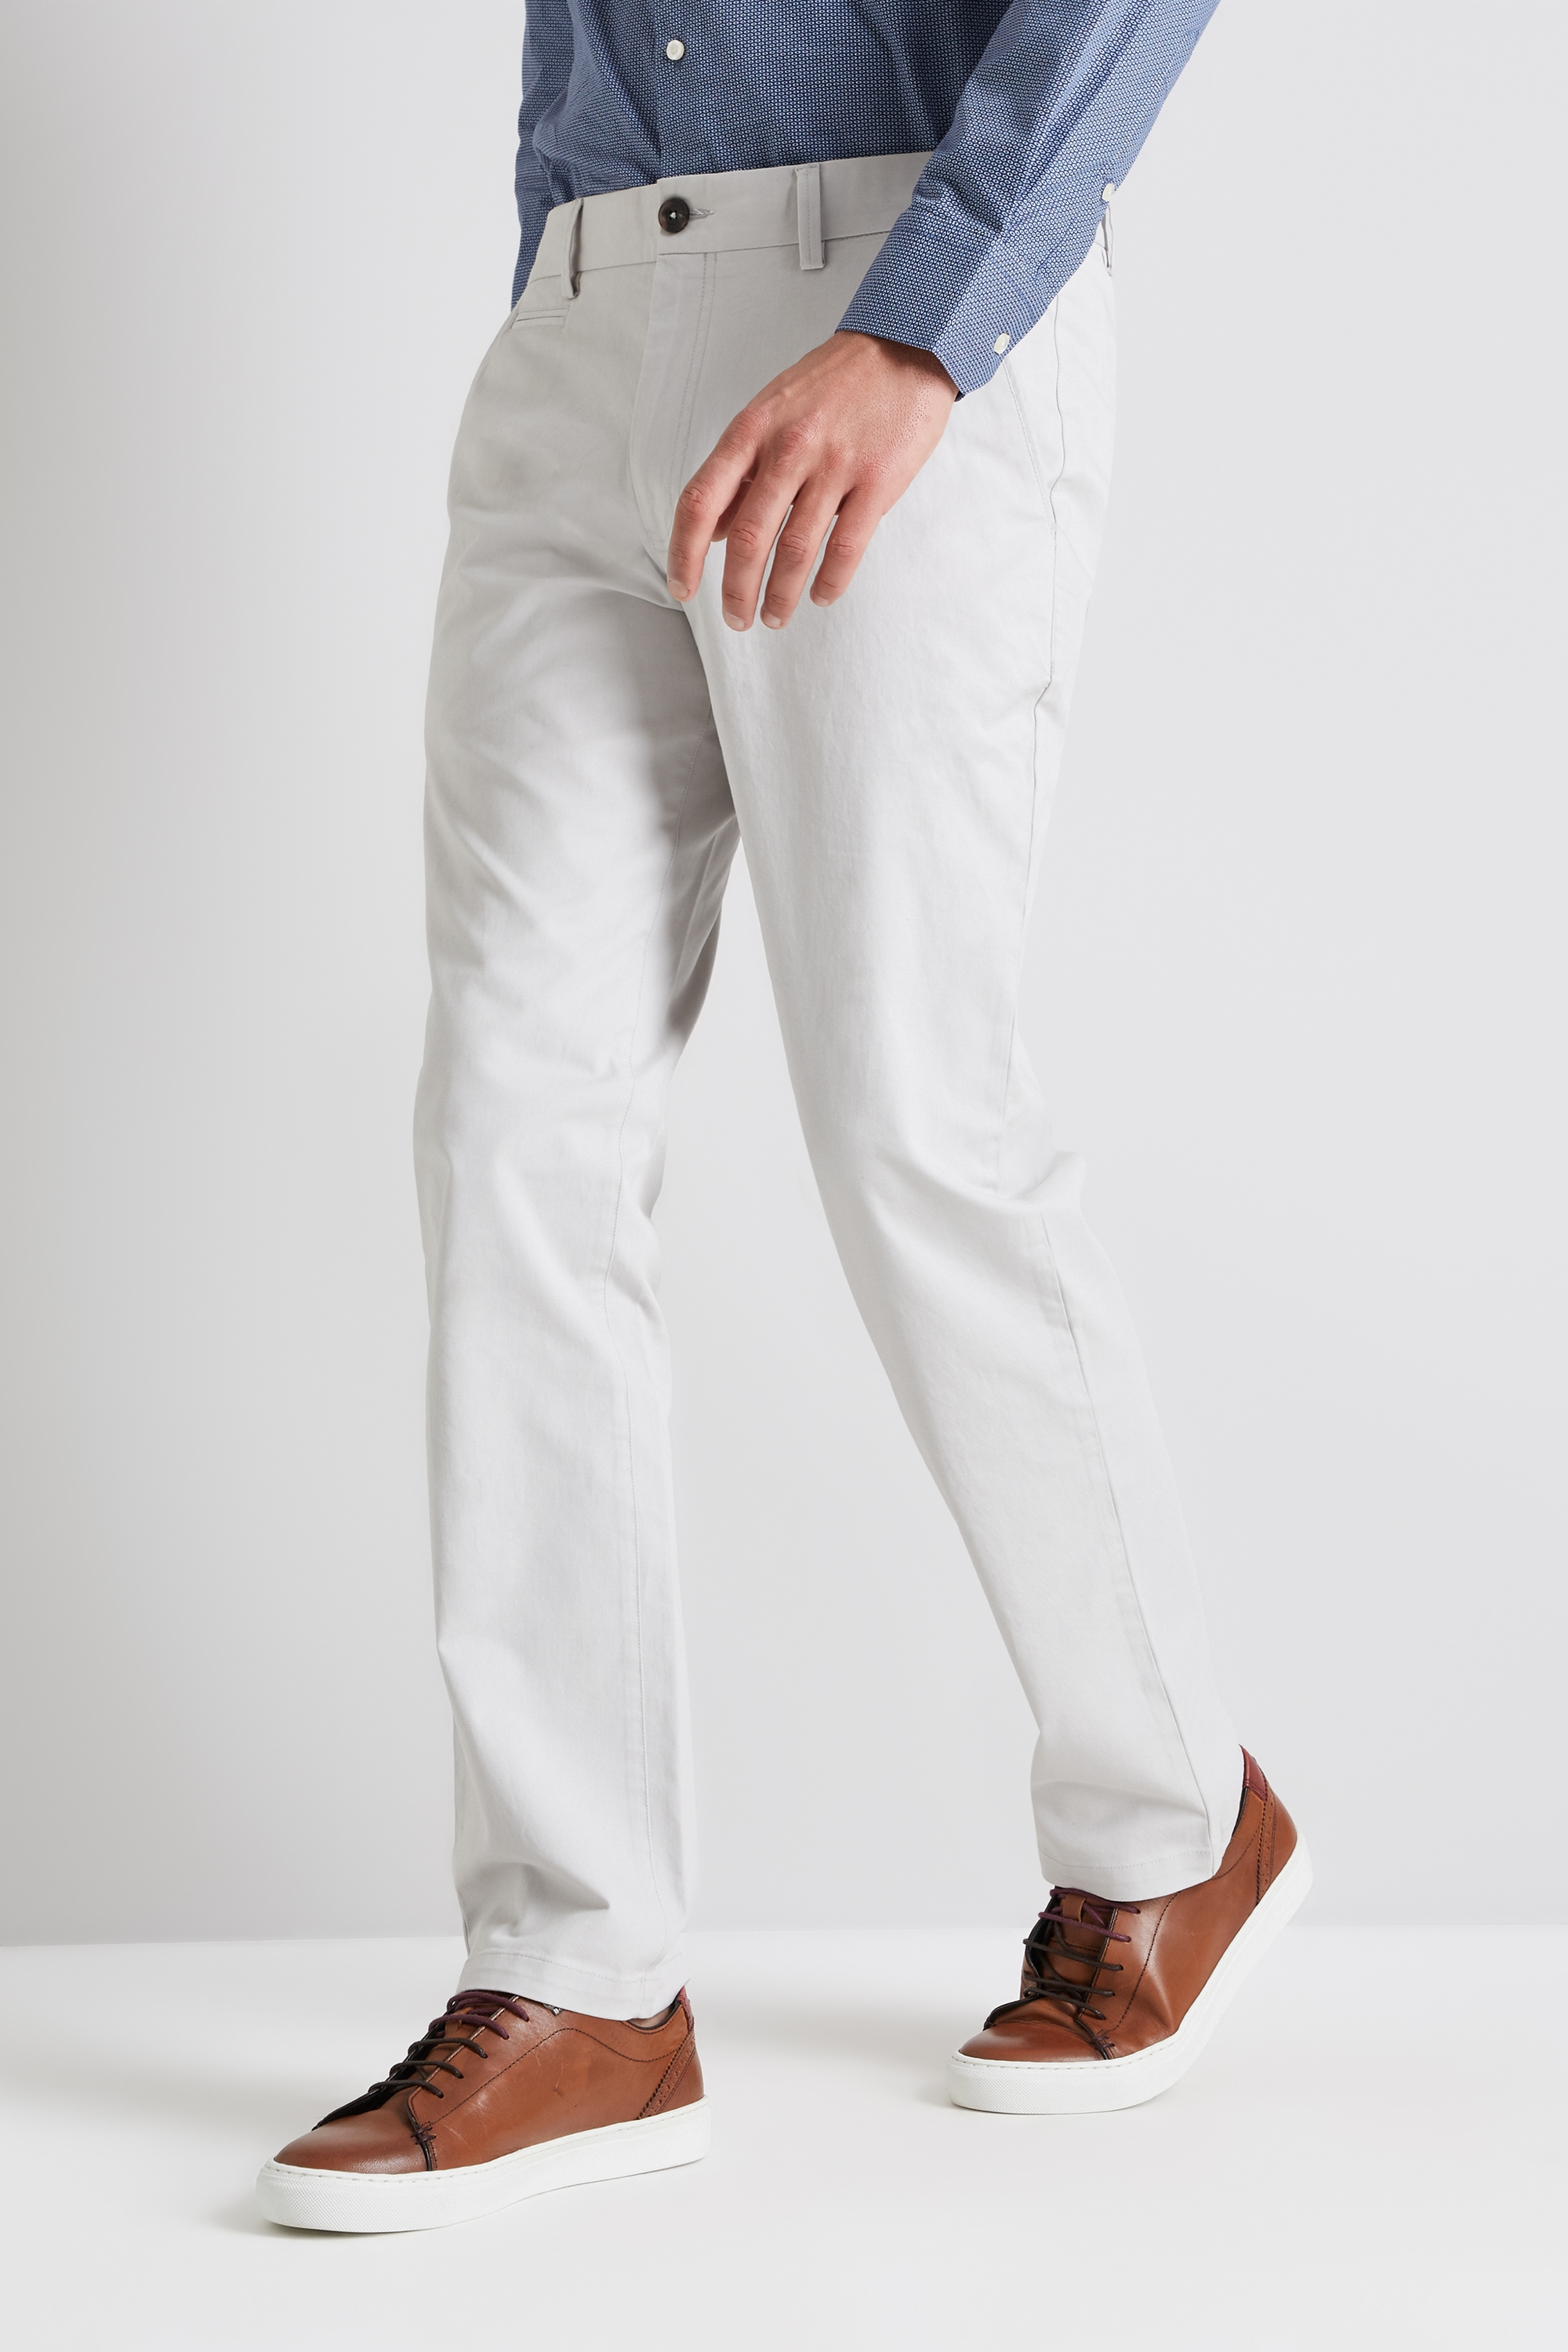 Details about Moss 1851 Mens Chinos Tailored Fit Stone White Stretch  Trousers Casual Pants c3c1b275acfa2